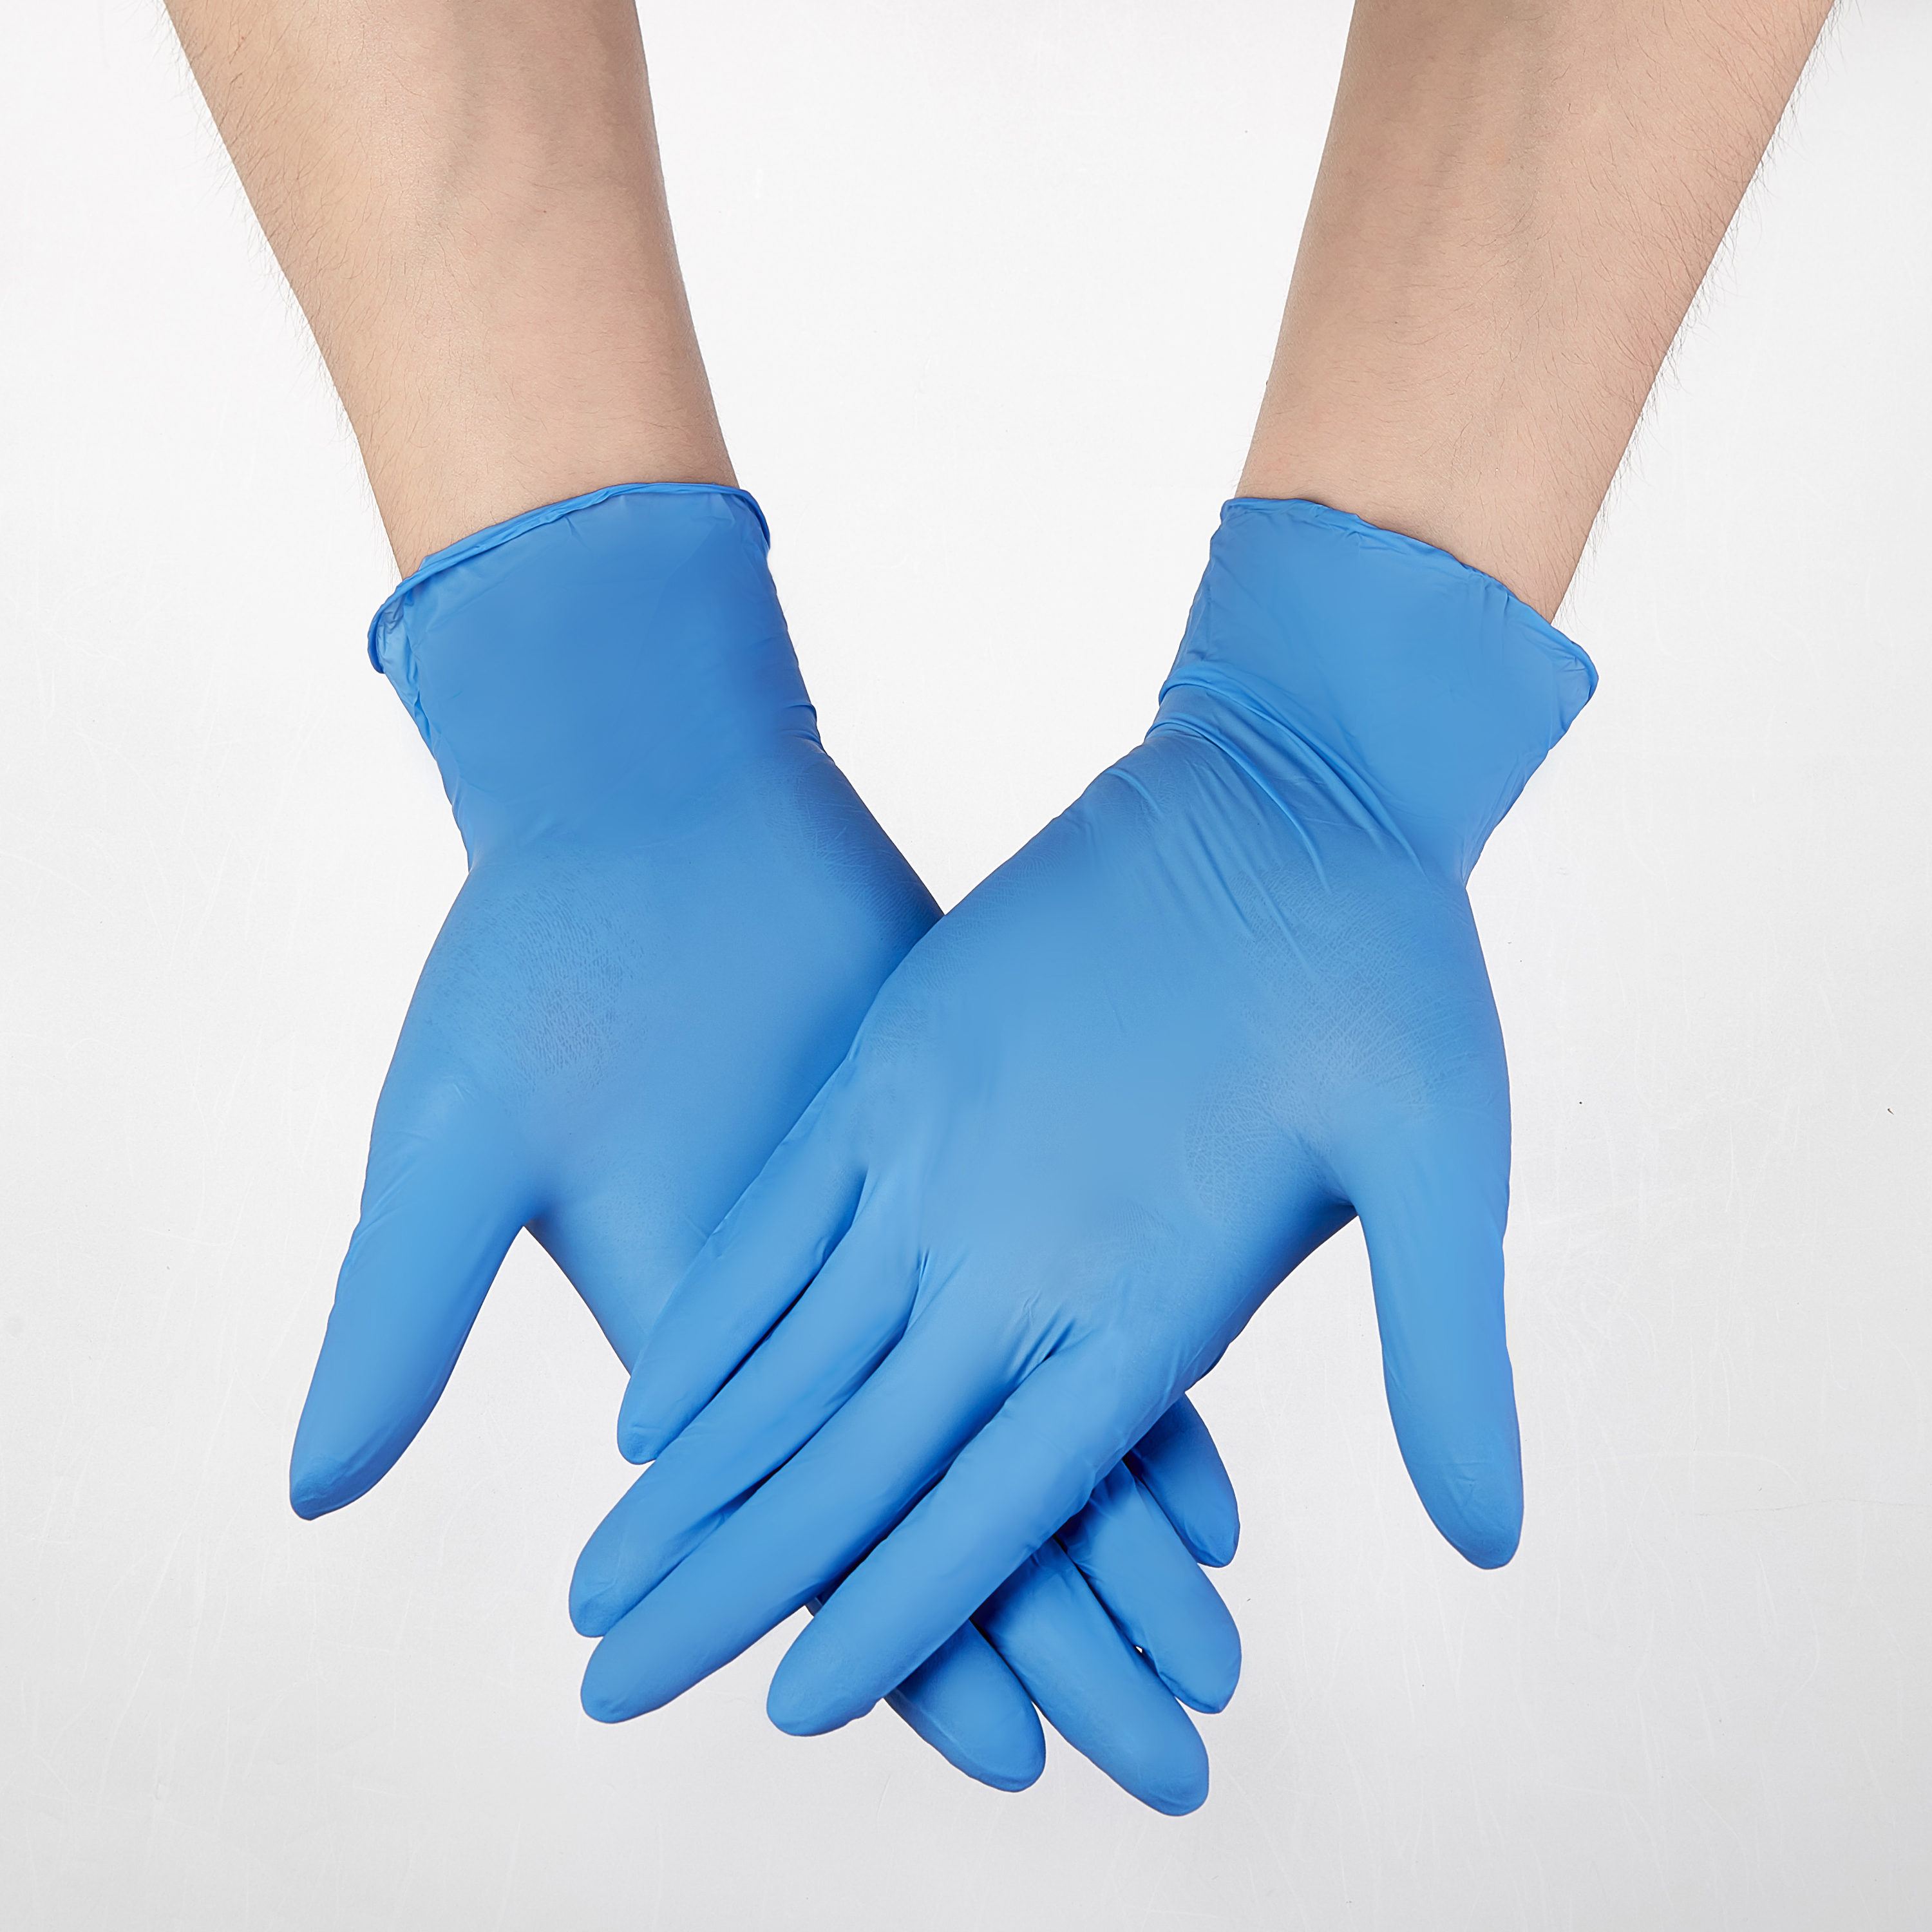 100PCS Blue Guantes 9Inch Nitrile Gloves Disposable Work Gloves Household Cleaning Washing Safety Gloves Free Mechanic Synthetic